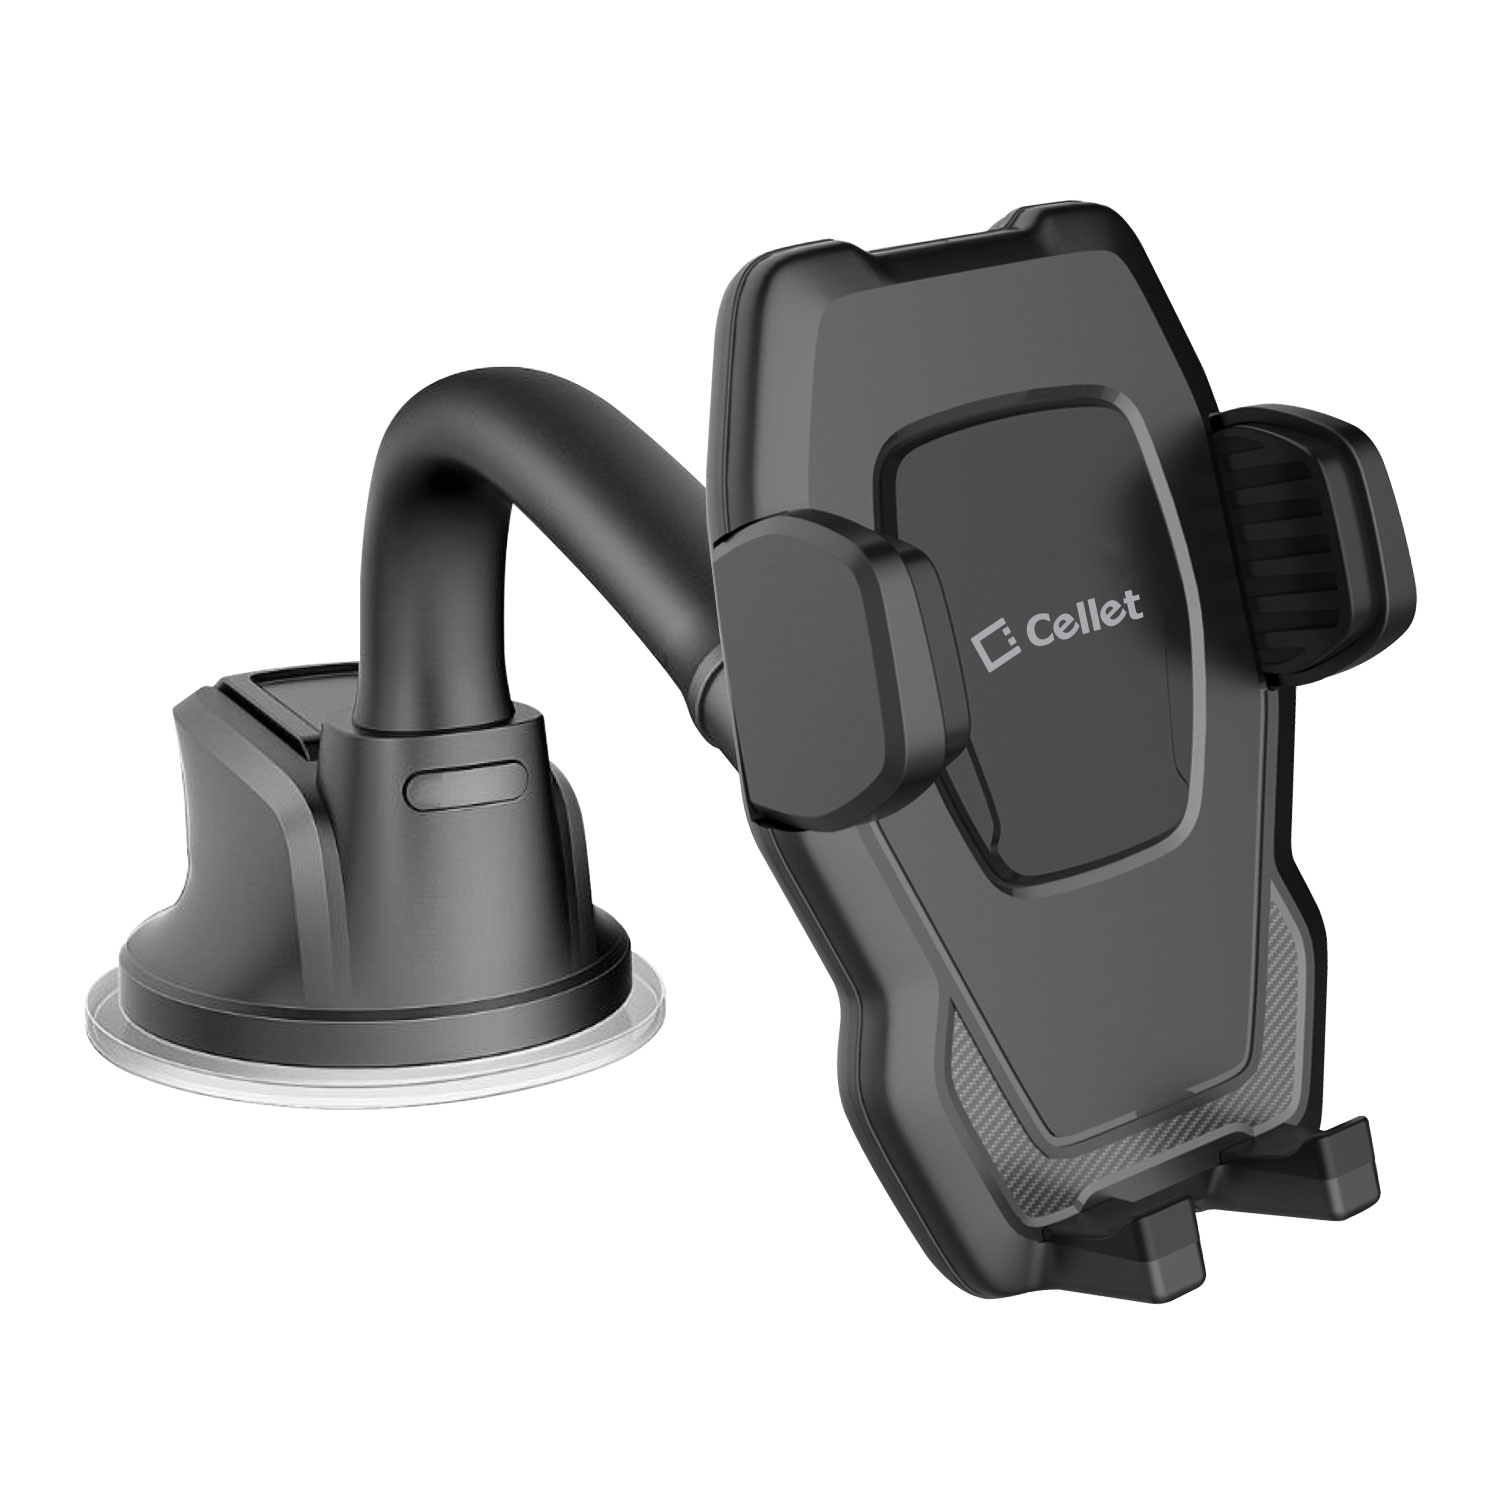 Windshield Phone Holder Goose Neck Black